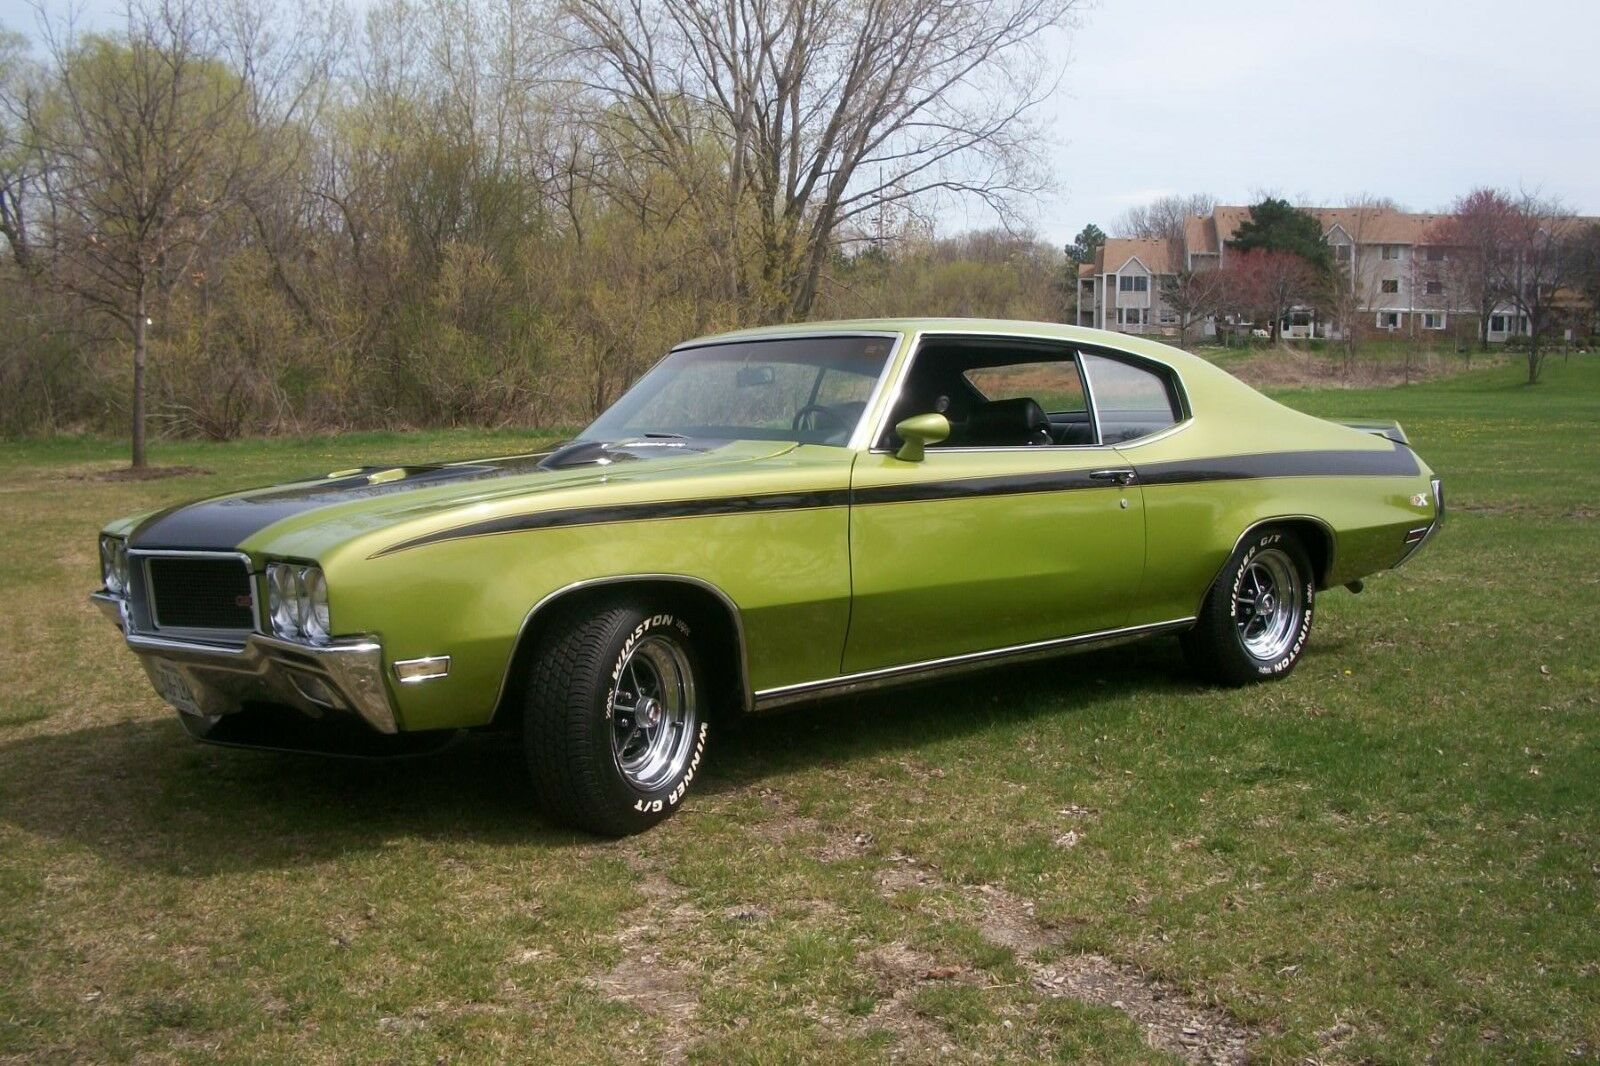 1970 buick skylark gsx tribute 455 stage 1 engine 360hp for Buick motors for sale